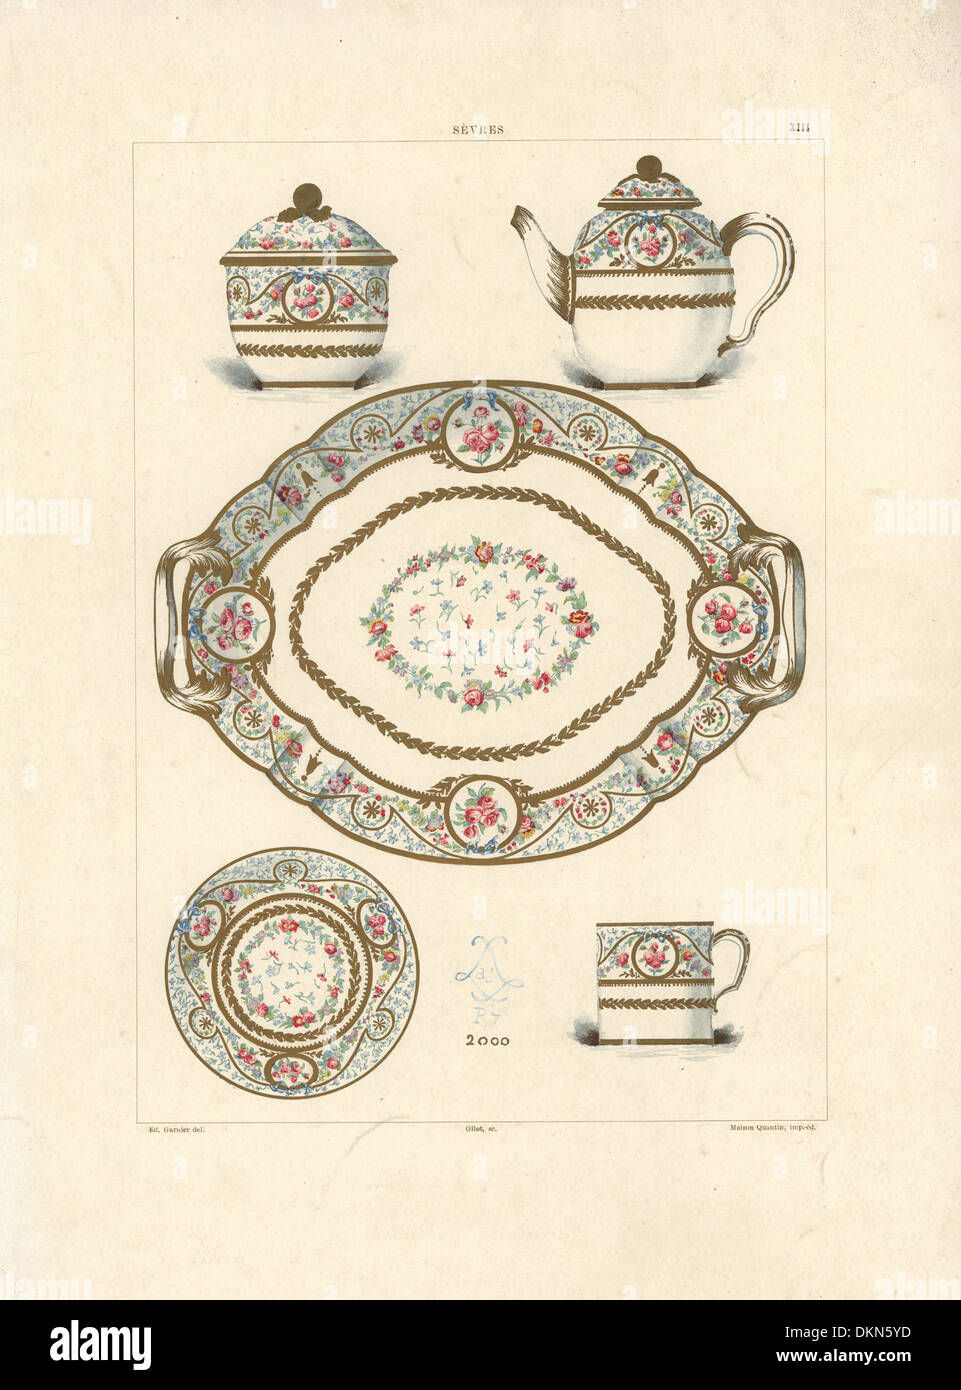 Sevres lunch service with simple decoration called Solitaire. - Stock Image